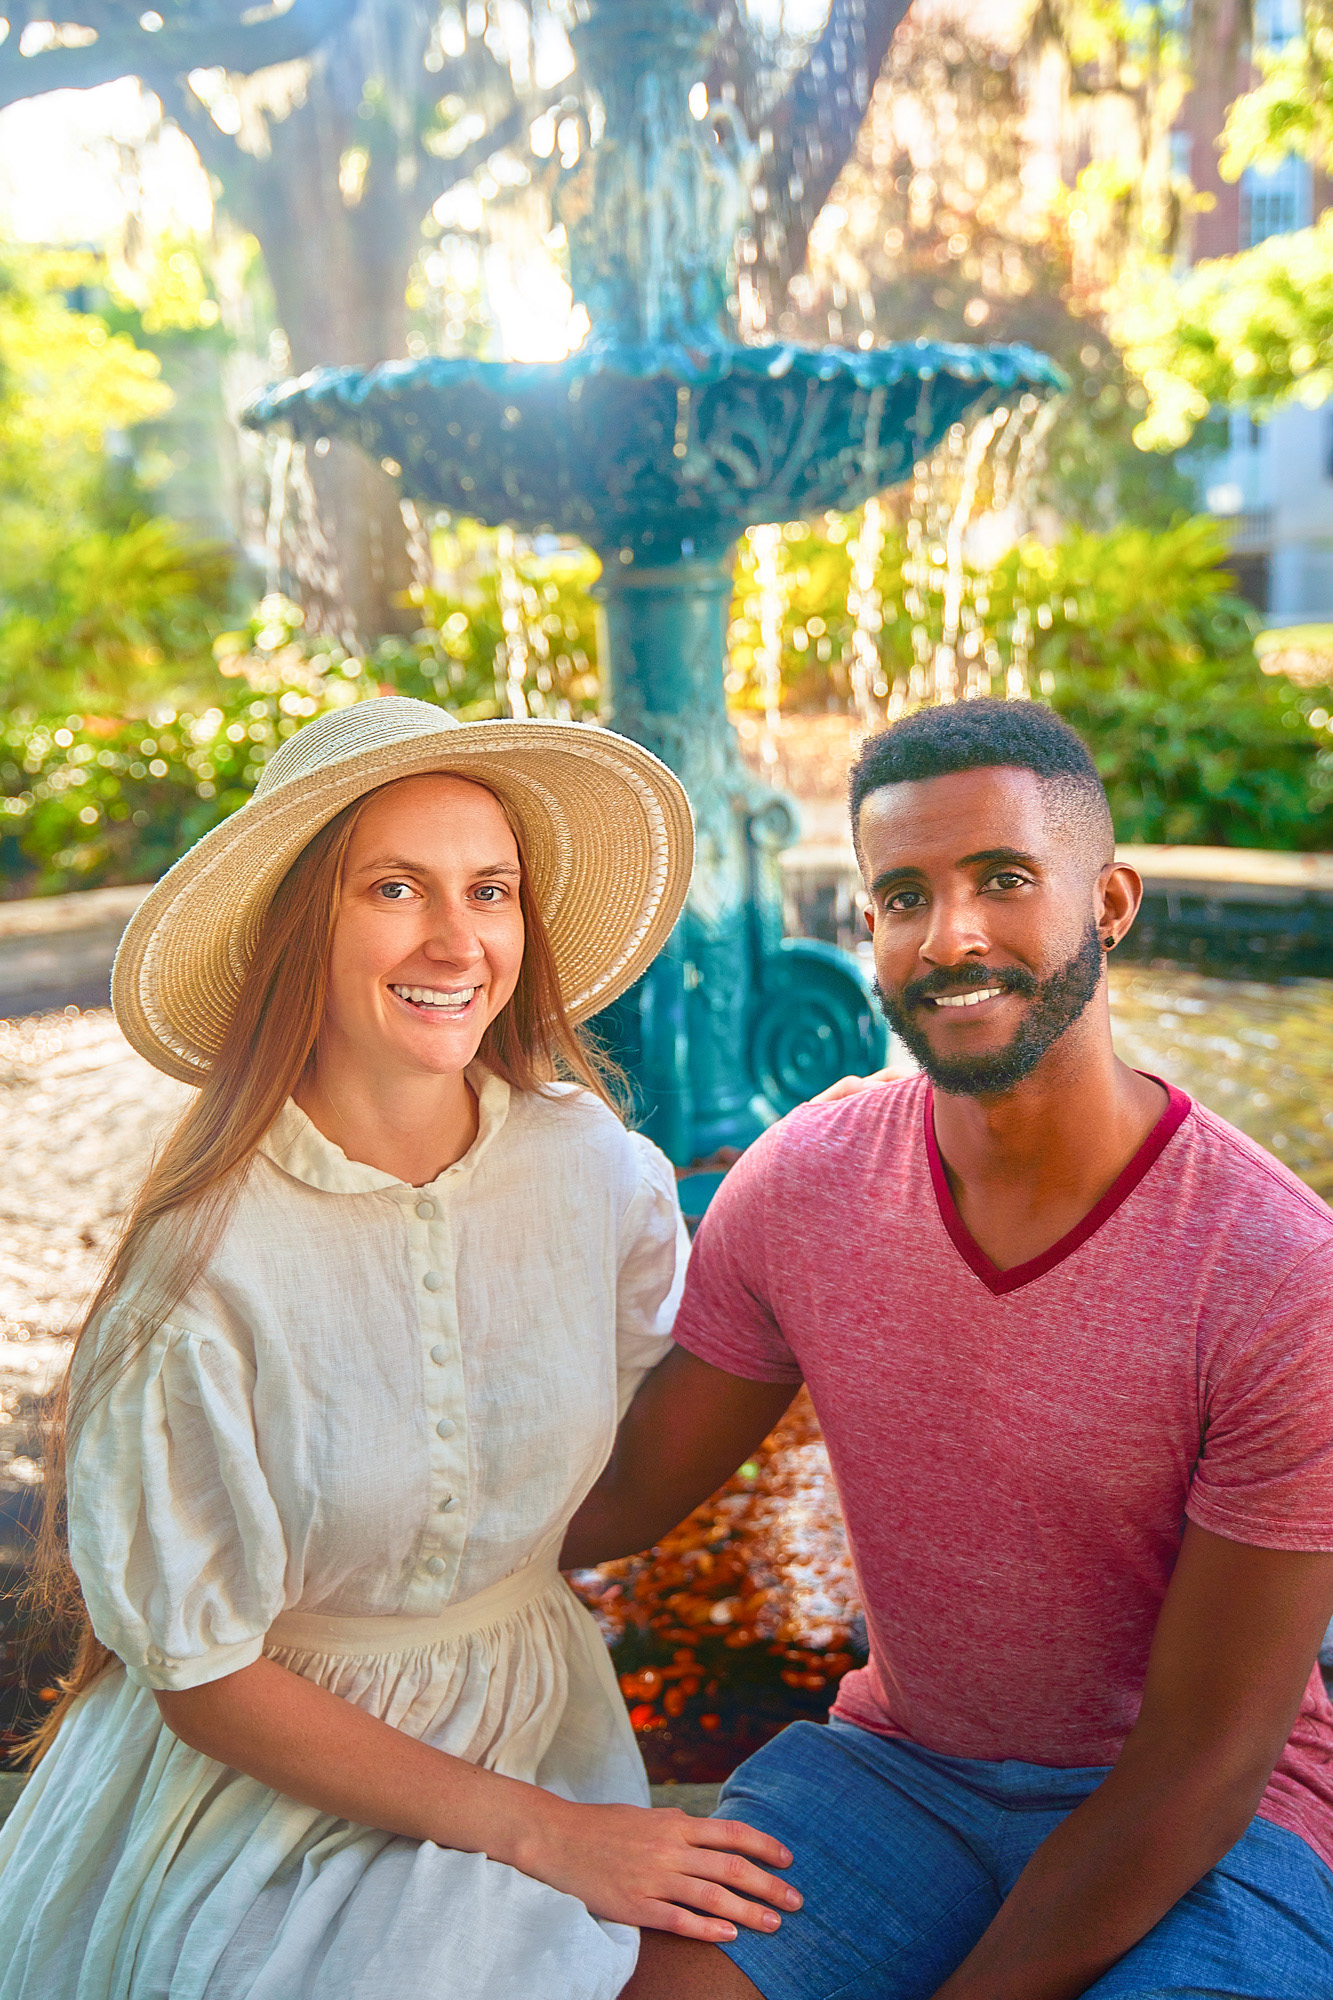 Victoria Yore and Terrence Drysdale sitting in front of a fountain in Savannah Georgia for Southern Trippers About Me photo